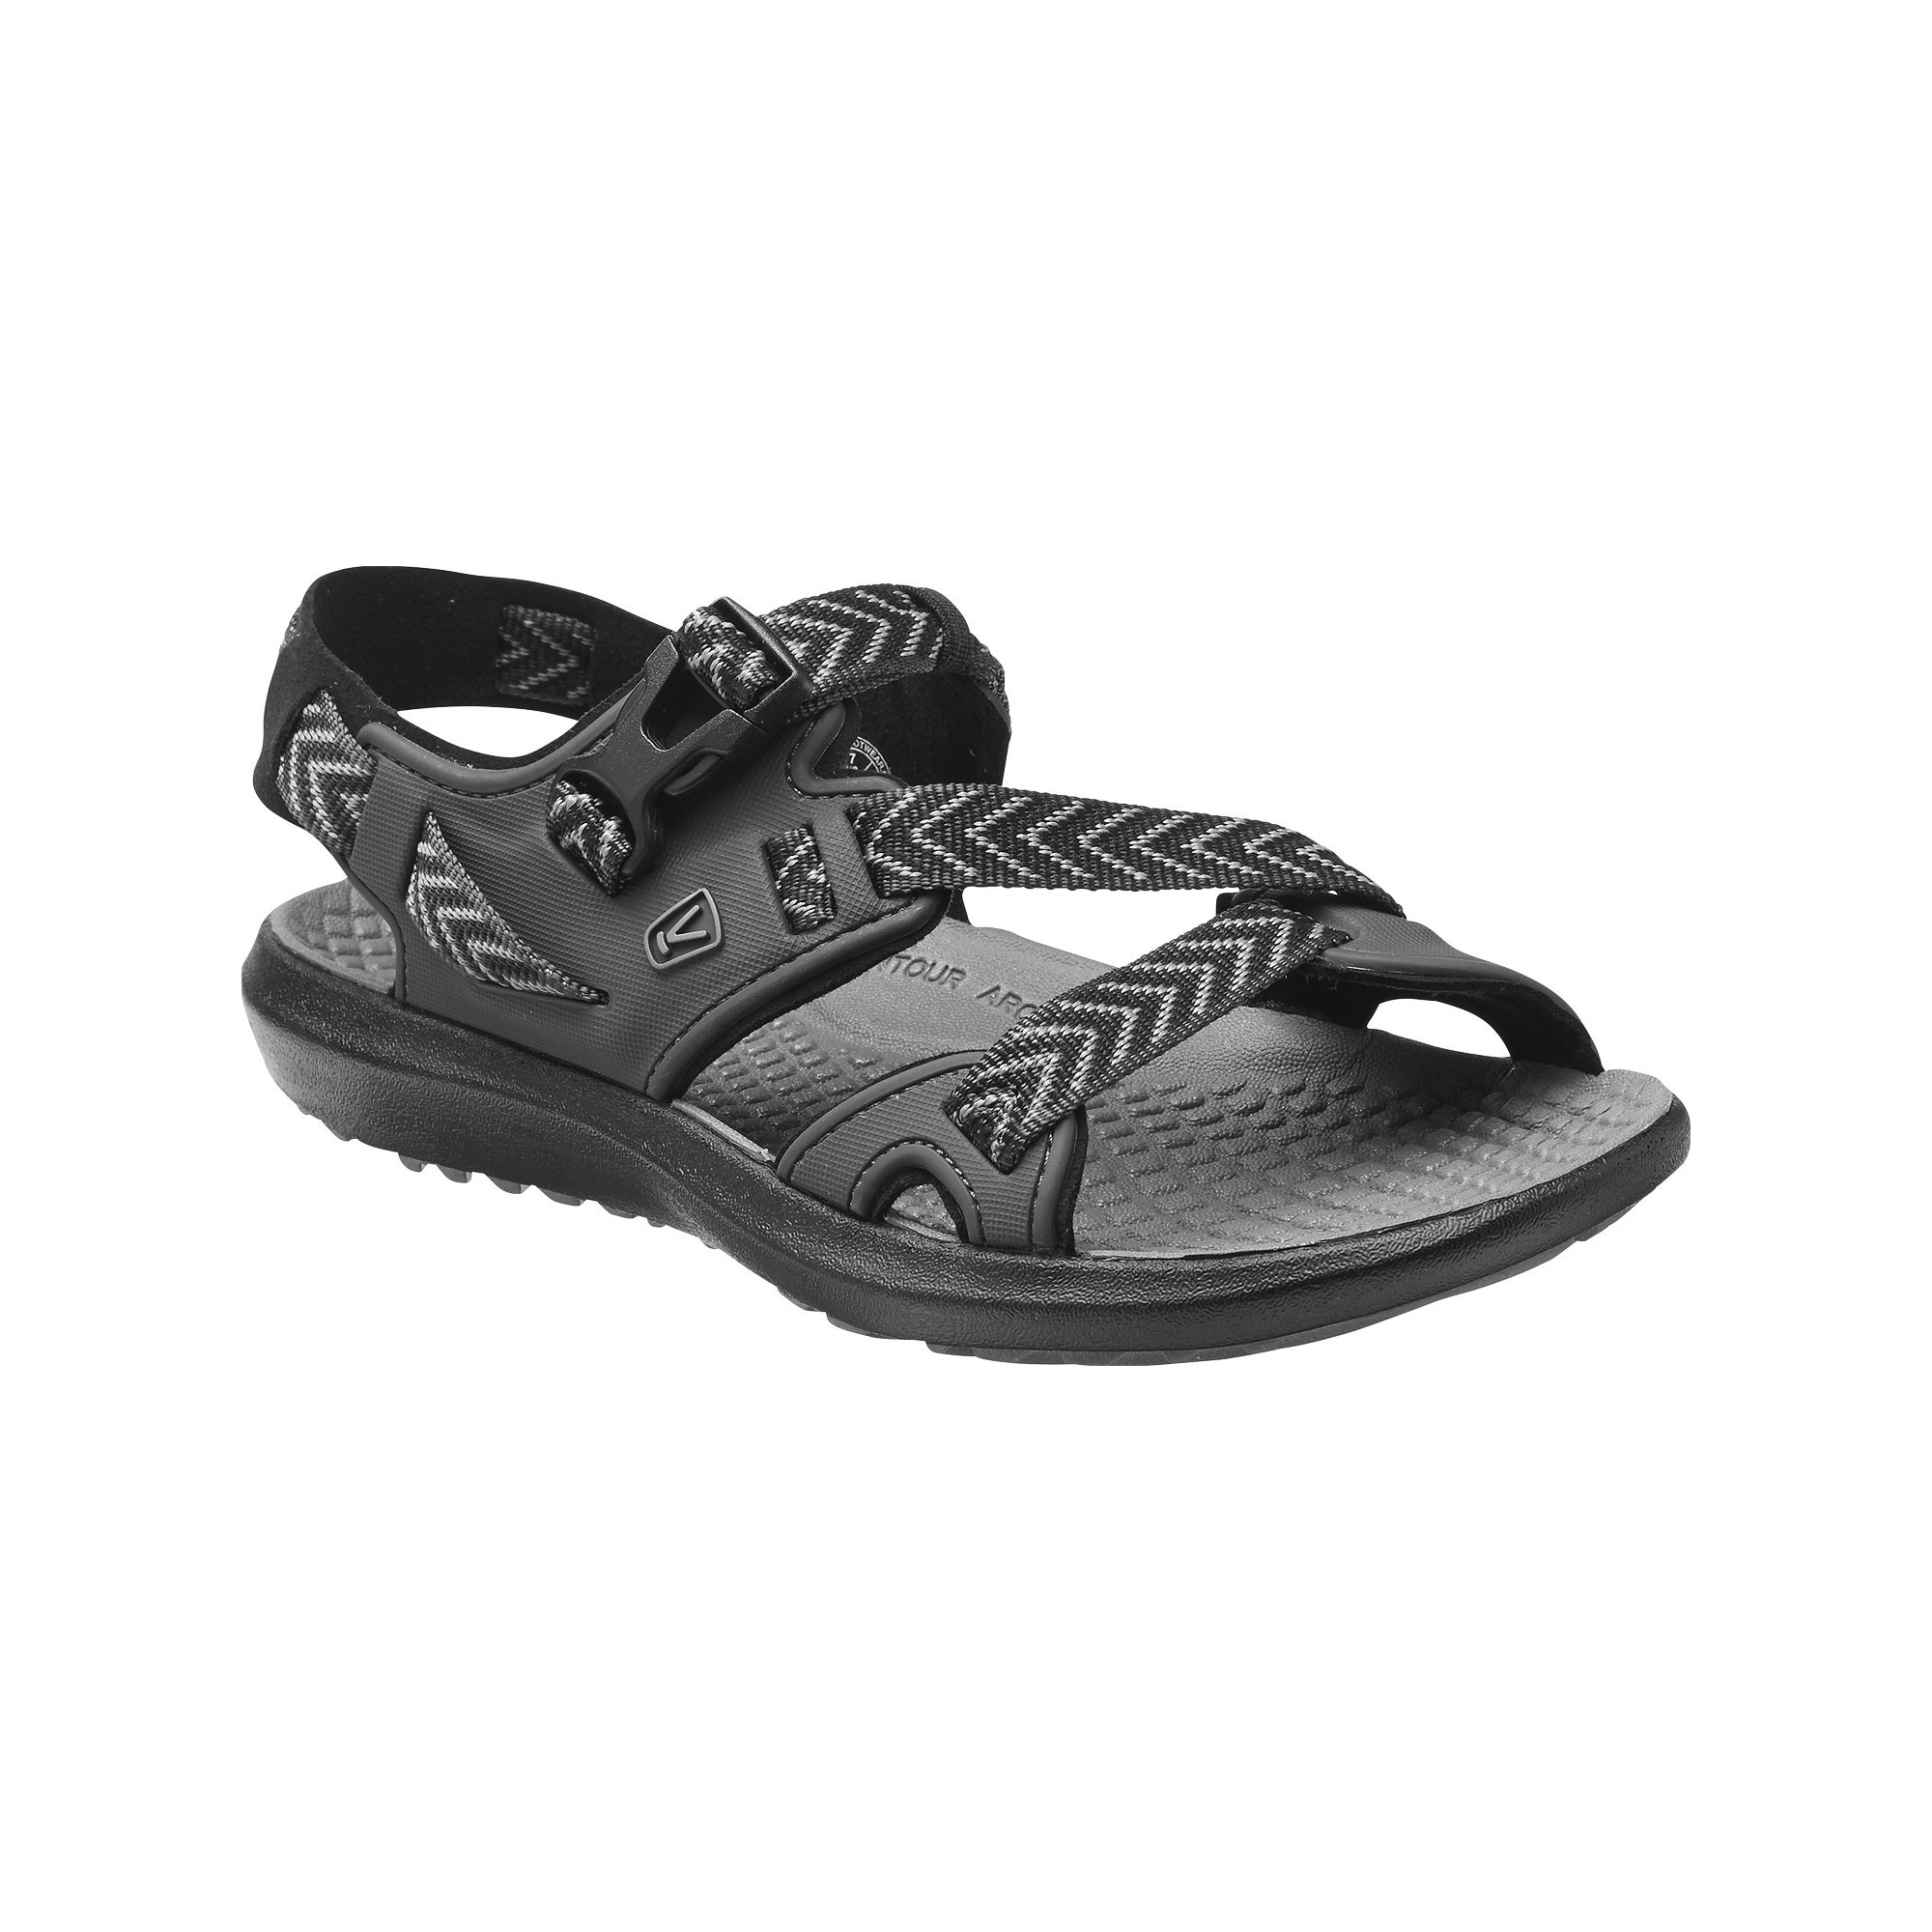 maupin men Designed with water sports in mind, the keen women's maupin sandals are packed with features to keep you performing in the wet.